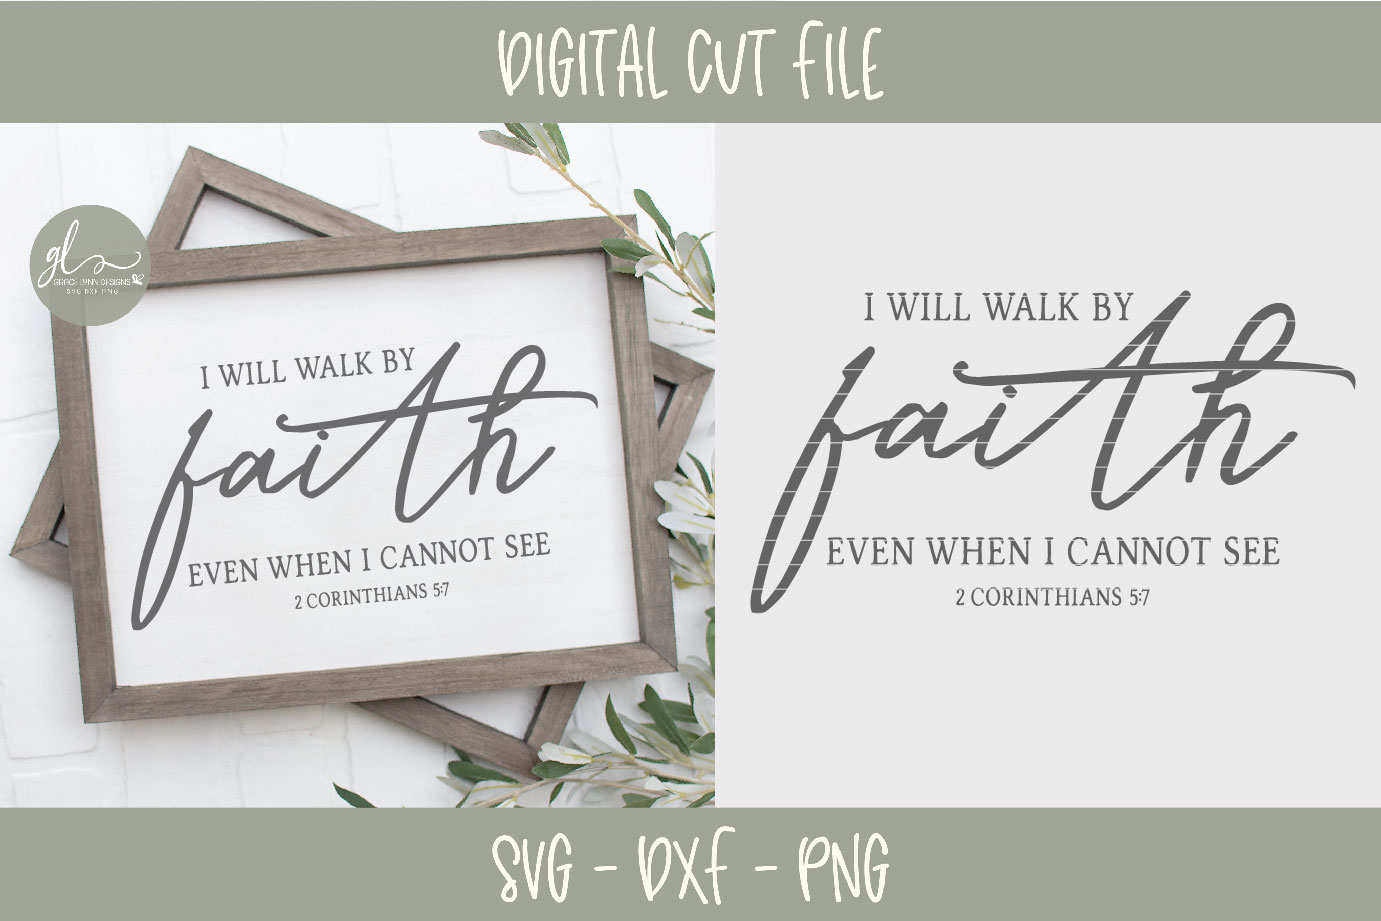 I Will Walk By Faith Even When I Cannot See - Scripture SVG example image 2